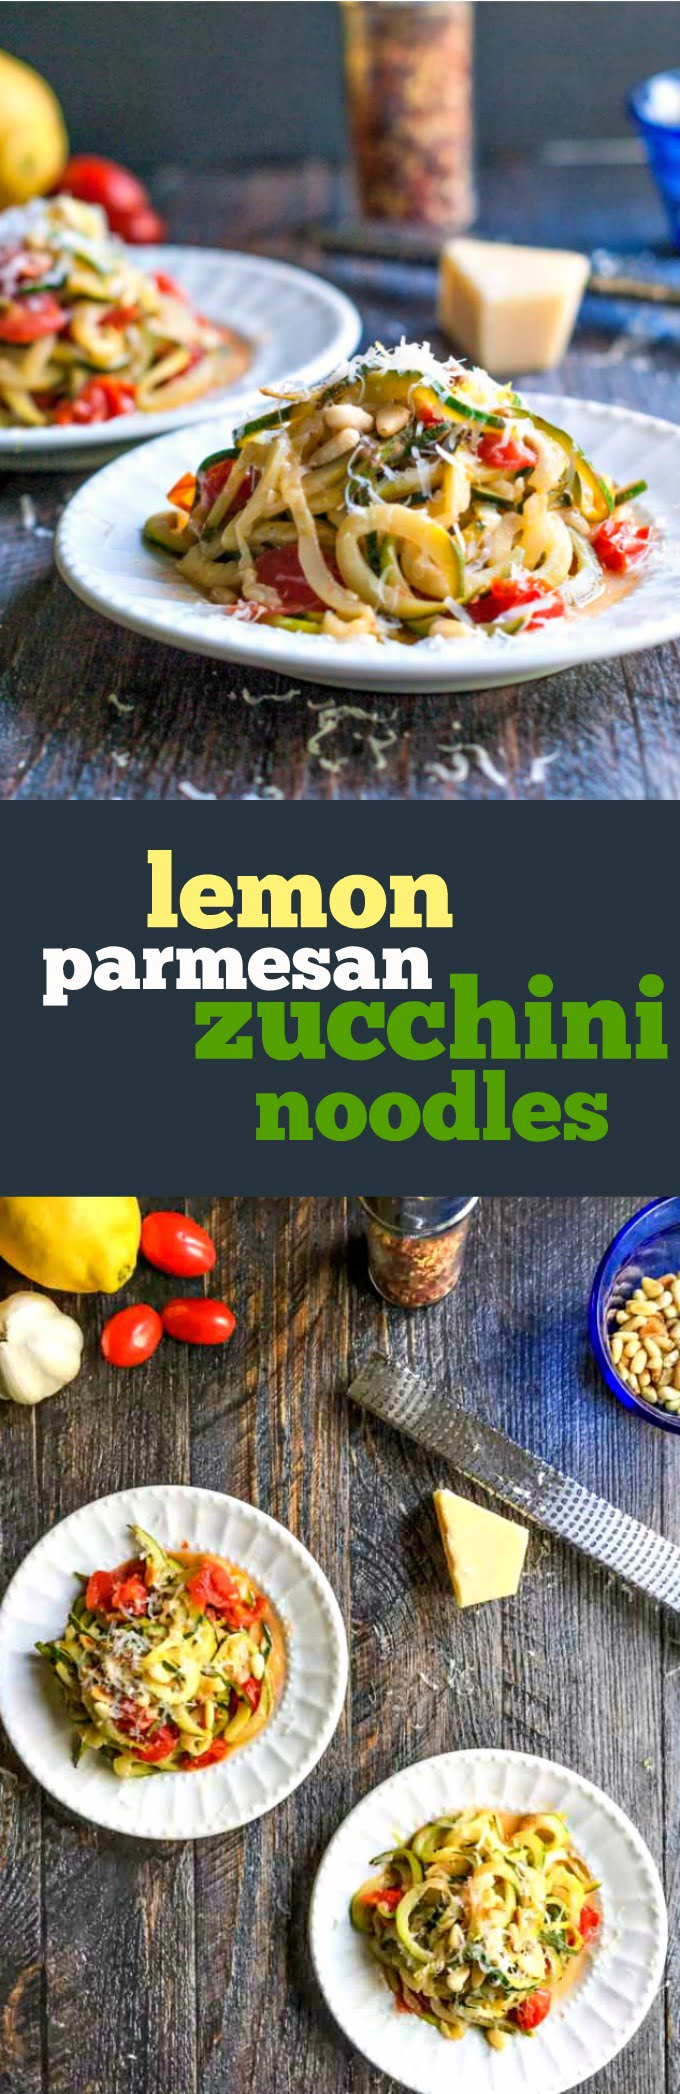 These lemon parmesan zucchini noodles are unbelievably flavorful, healthy and only take 10 minutes to make. Perfect with  veggies from the garden.